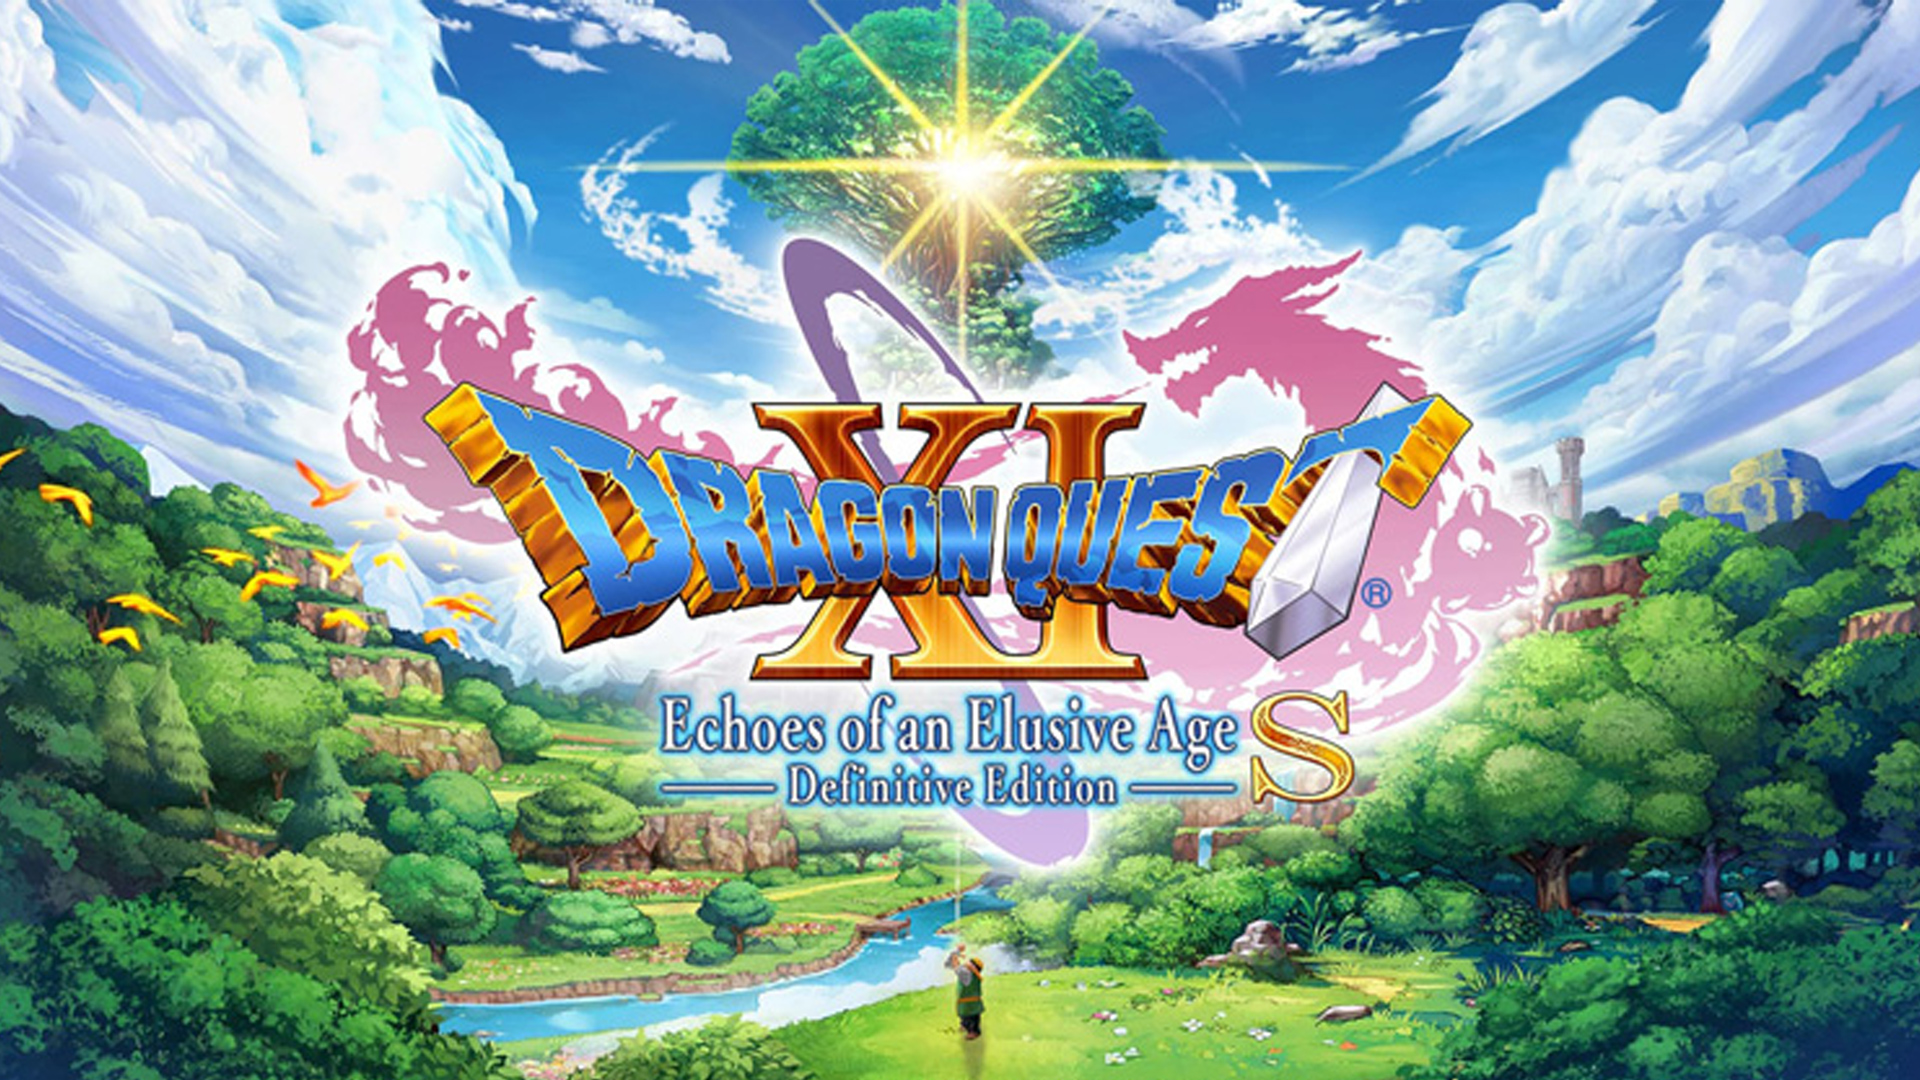 Everything You Need To Know About Dragon Quest Xi S Echoes Of An Elusive Age Definitive Edition For Nintendo Switch The Mako Reactor